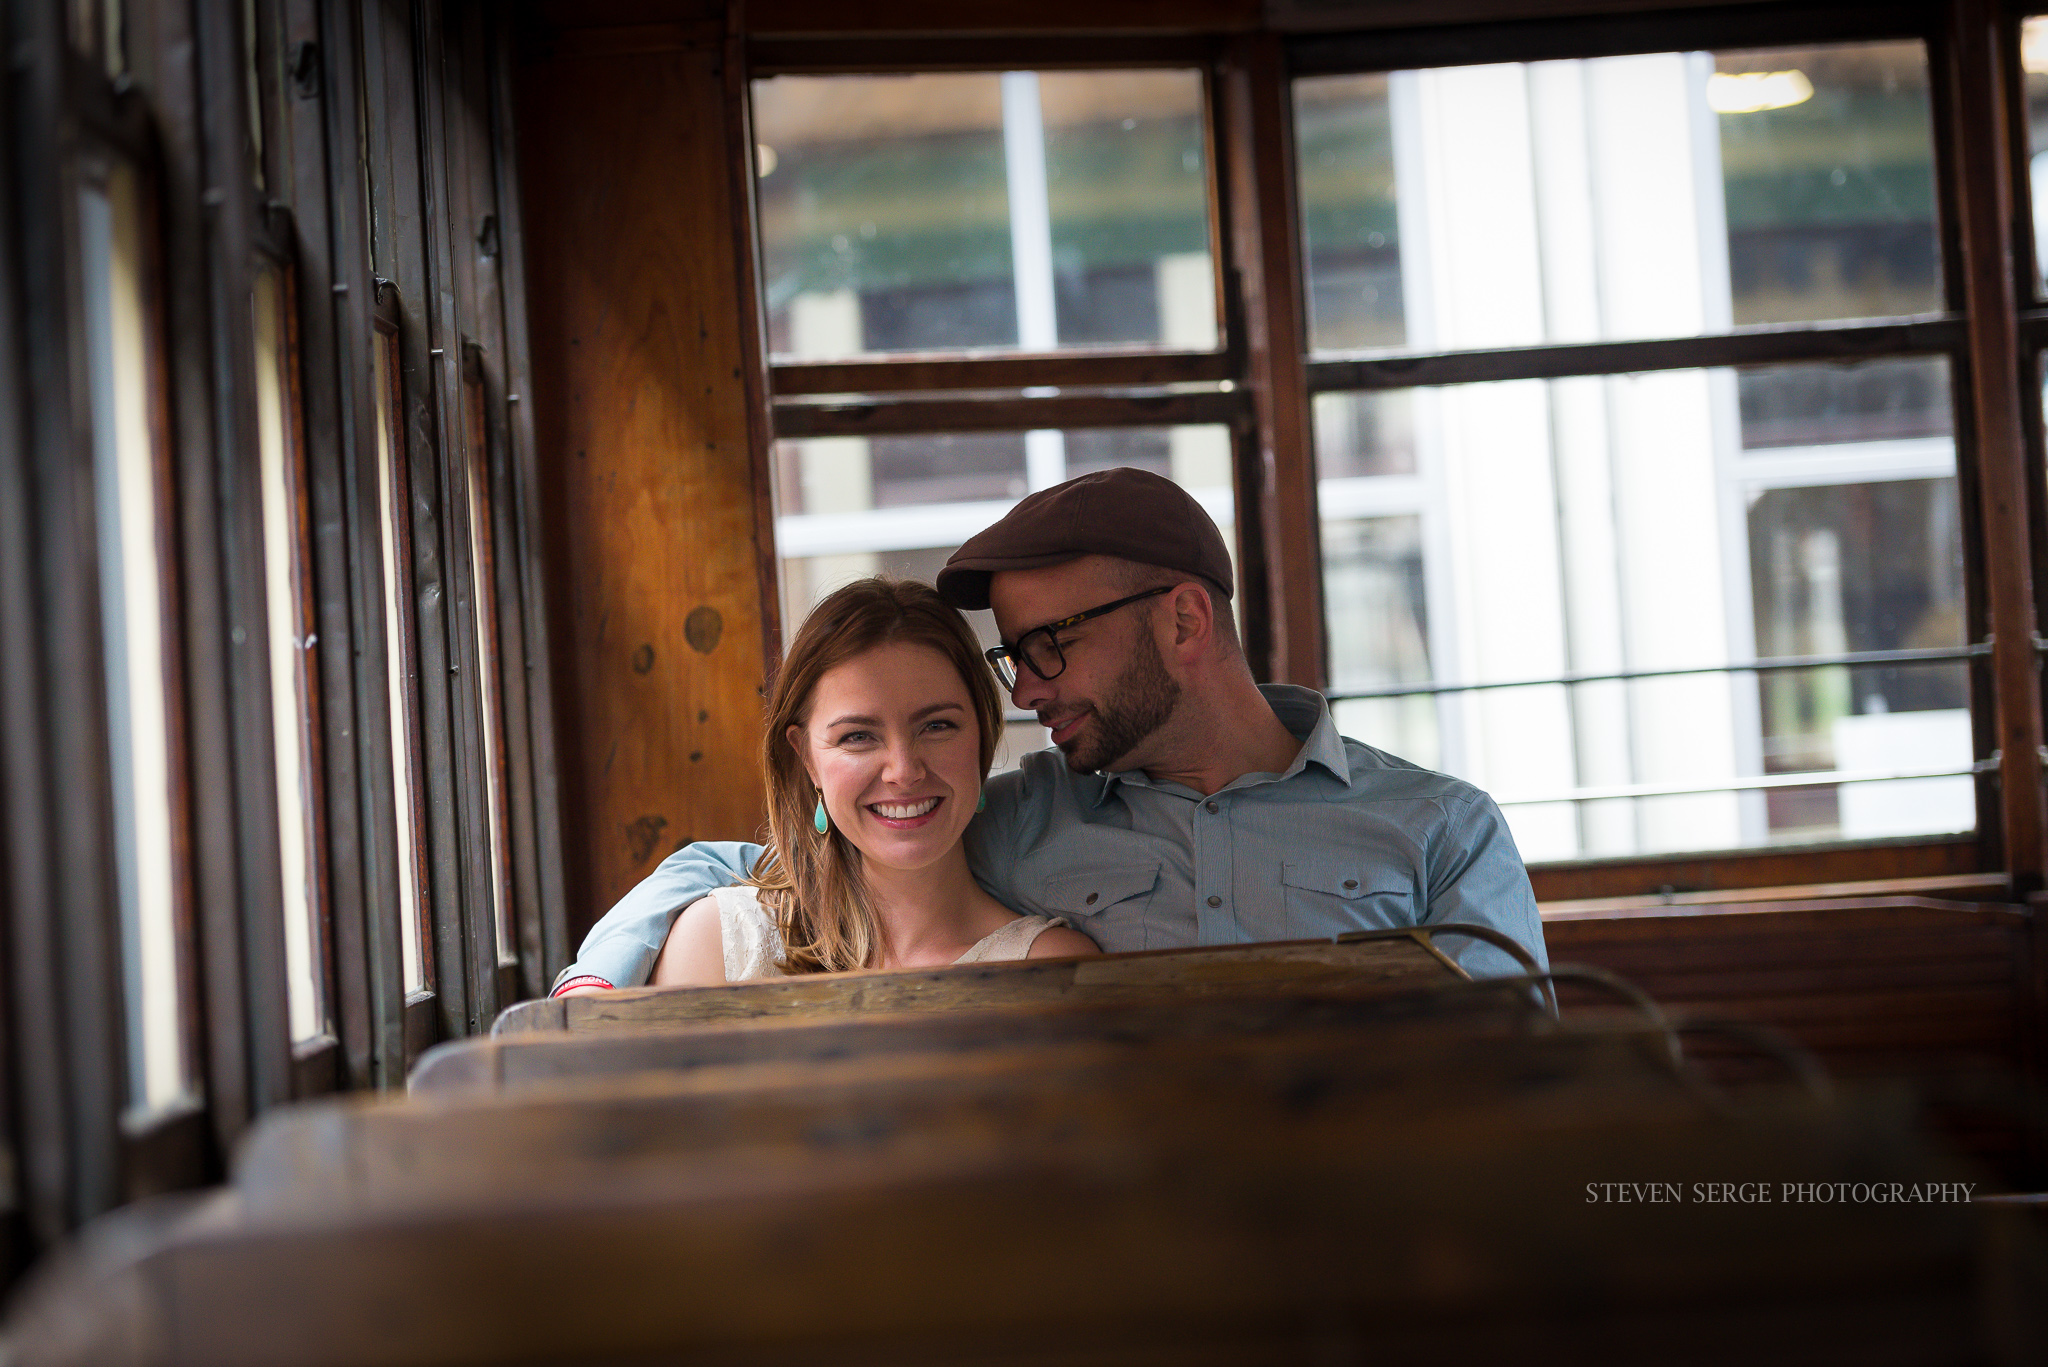 Aleine-Scranton-Engagement-Wedding-Nepa-Photographer-Steamtown-Photography-14.jpg